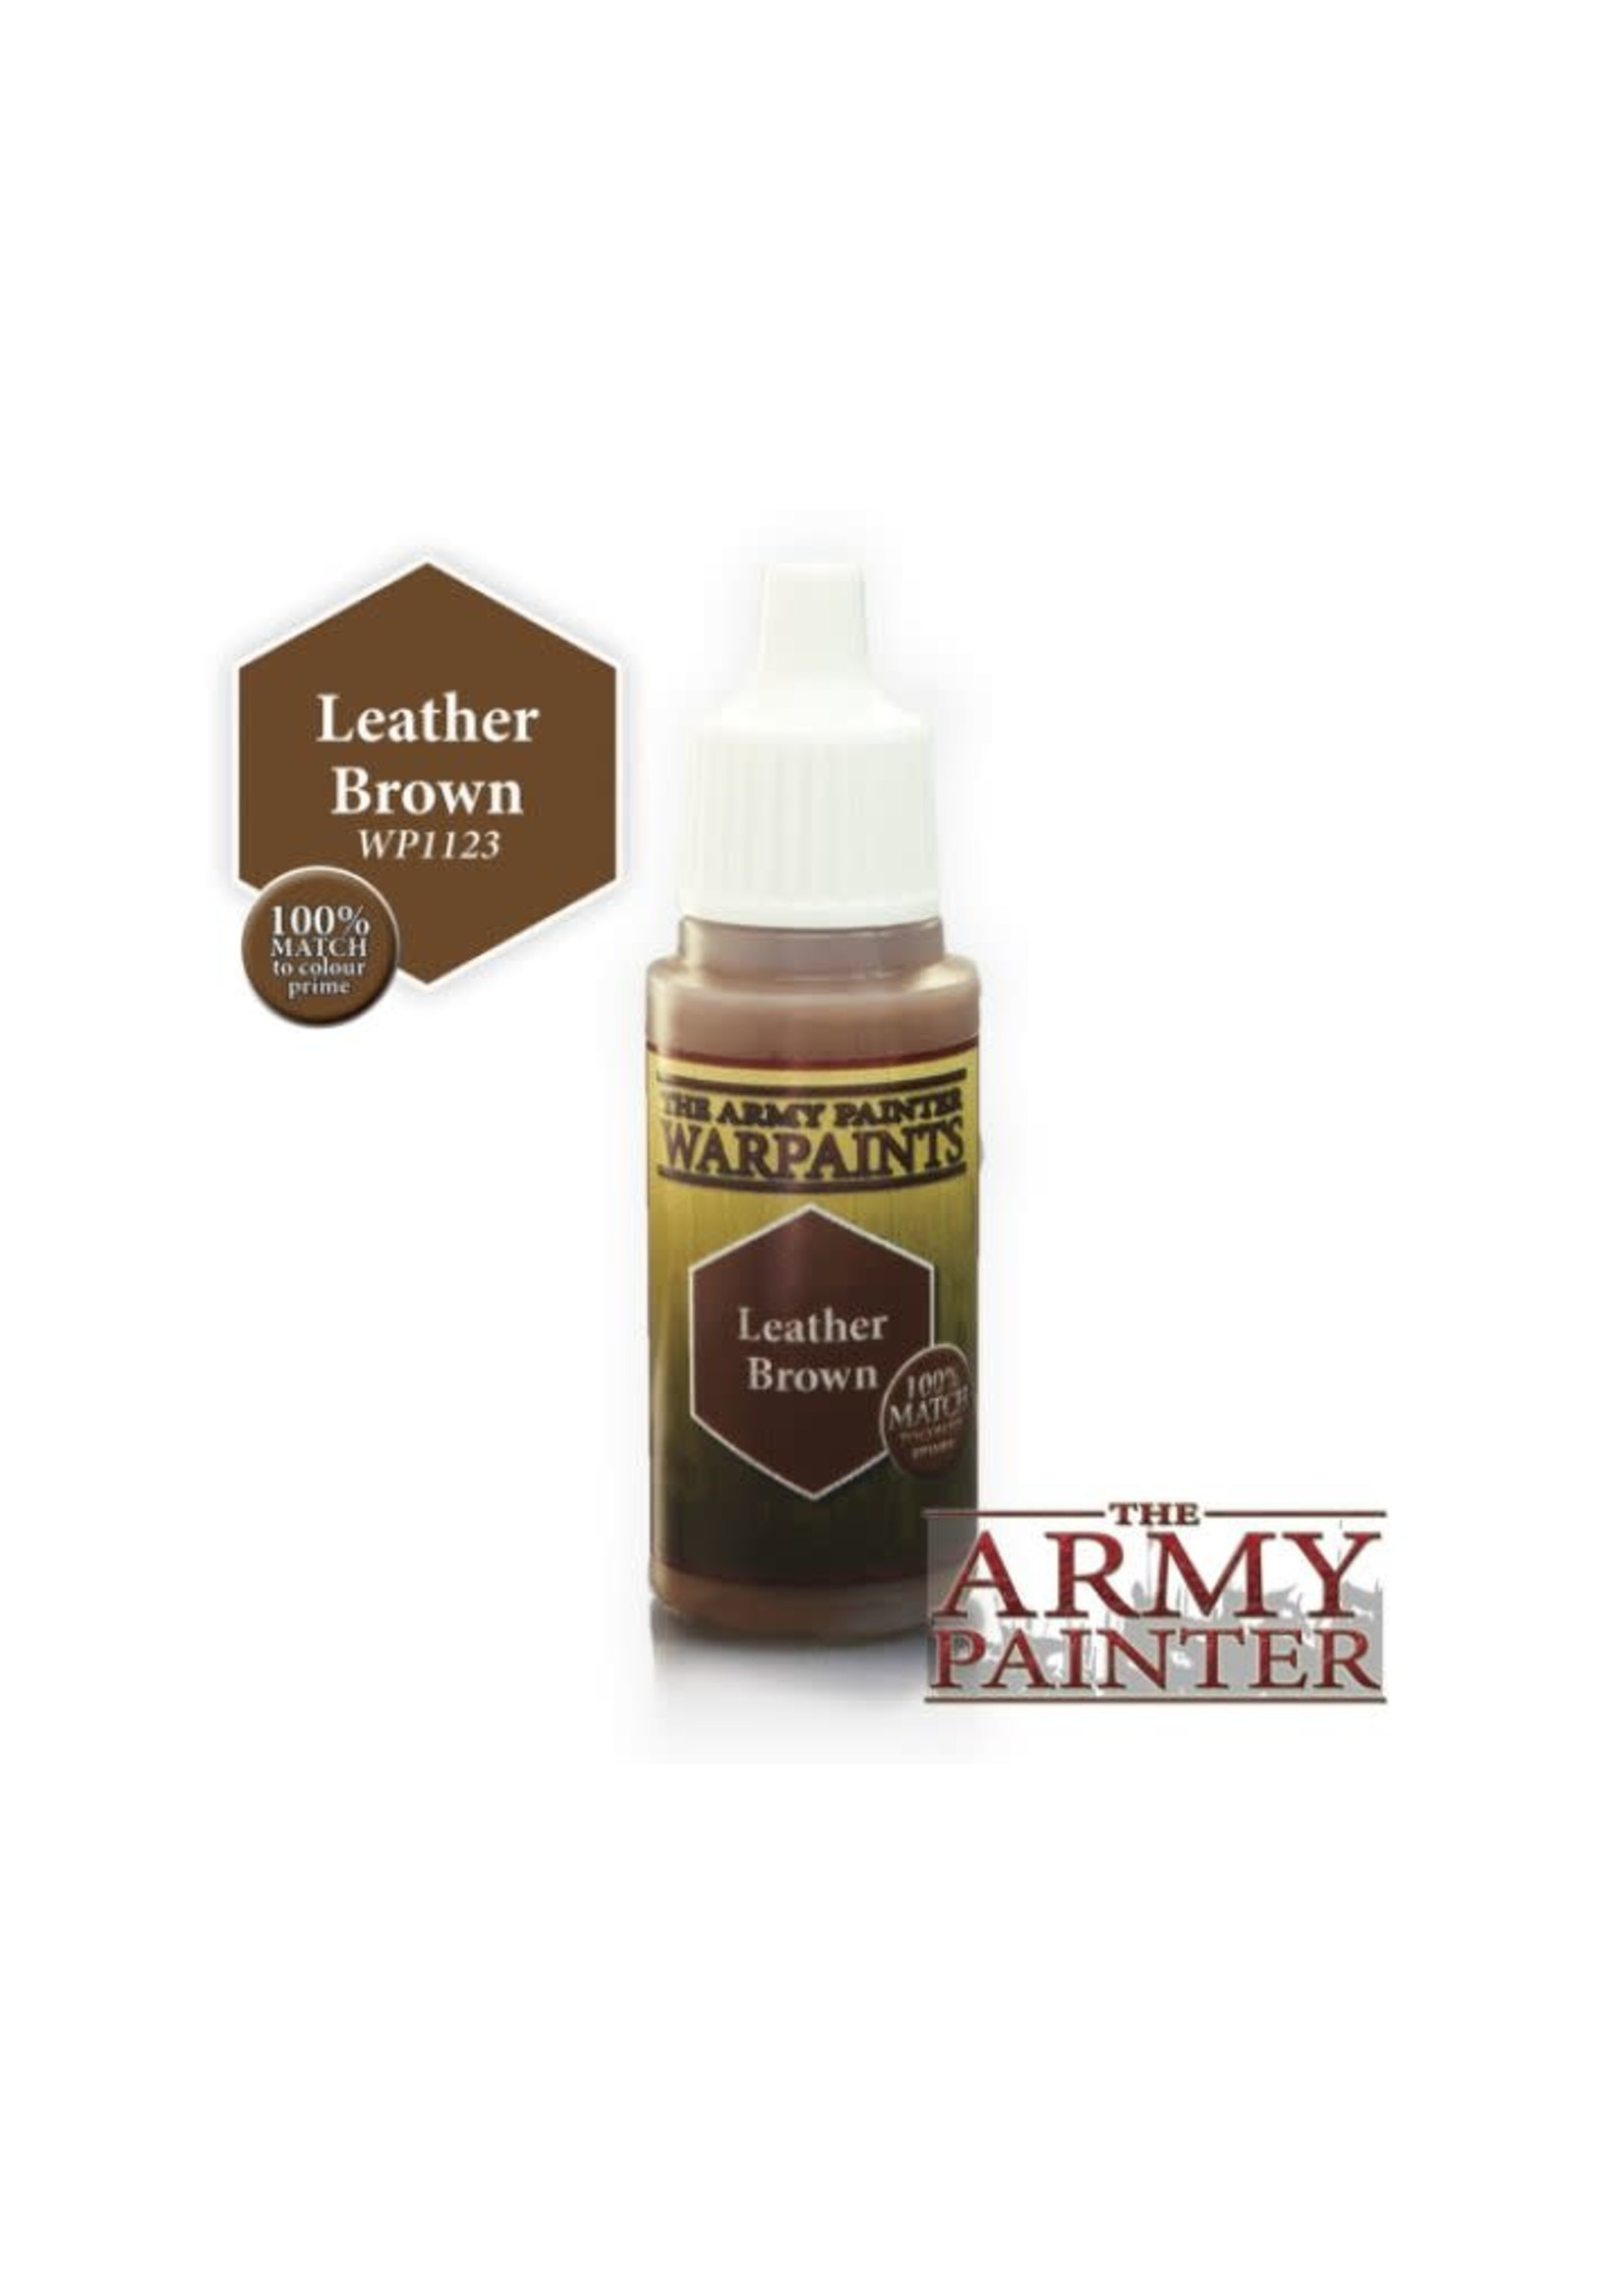 Army Painter Warpaints - Leather Brown